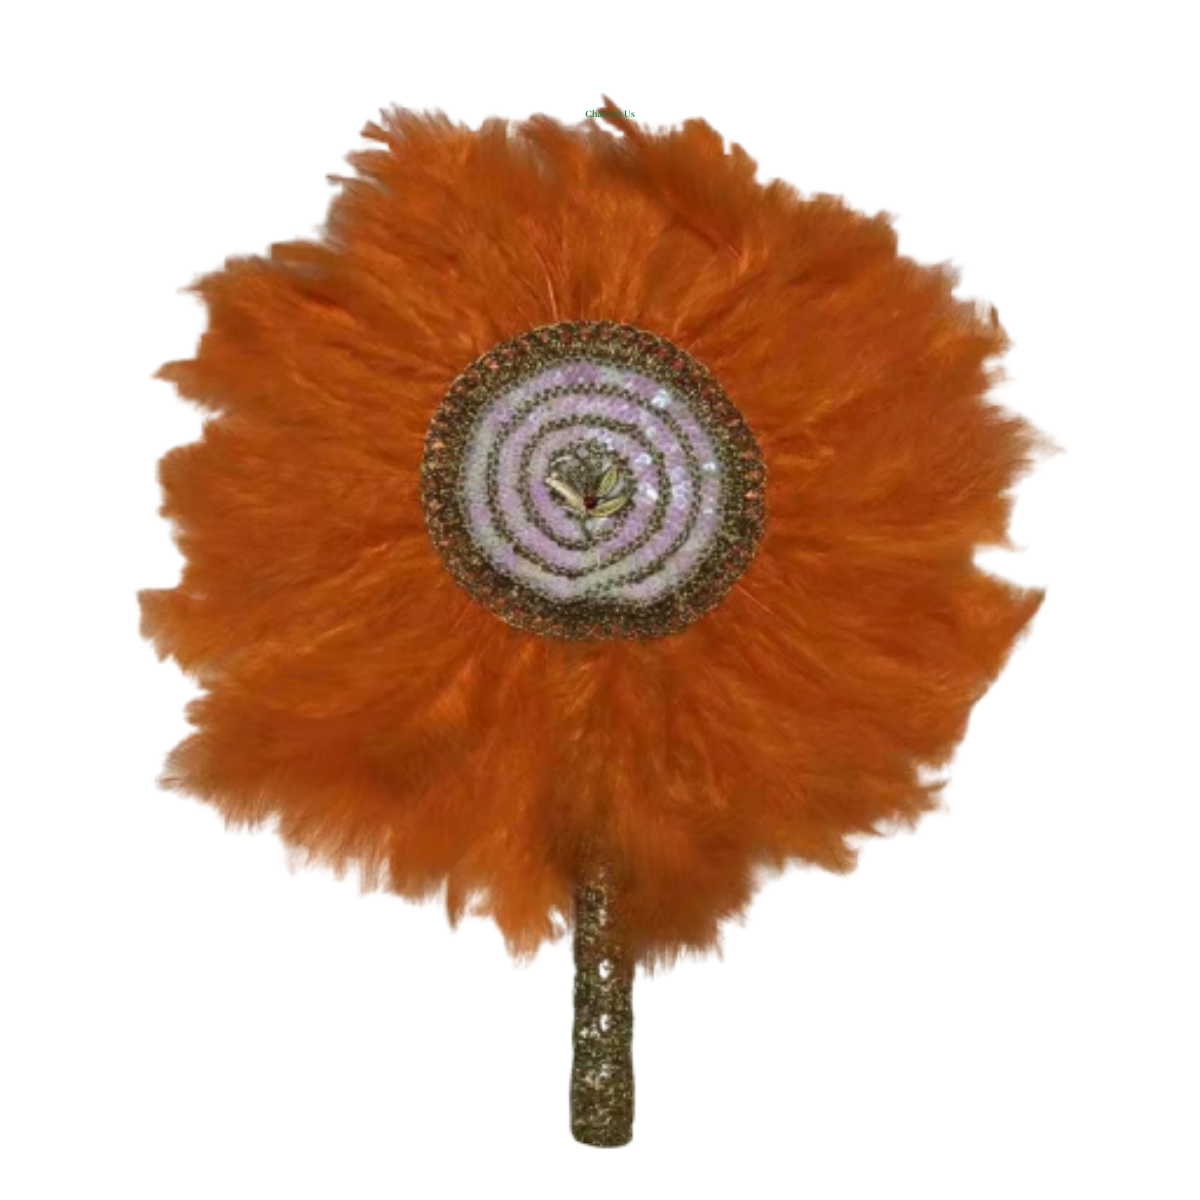 High-Quality Handmade Wedding Feather Hand Fan #21 - Alagema Fabrics & Accessories